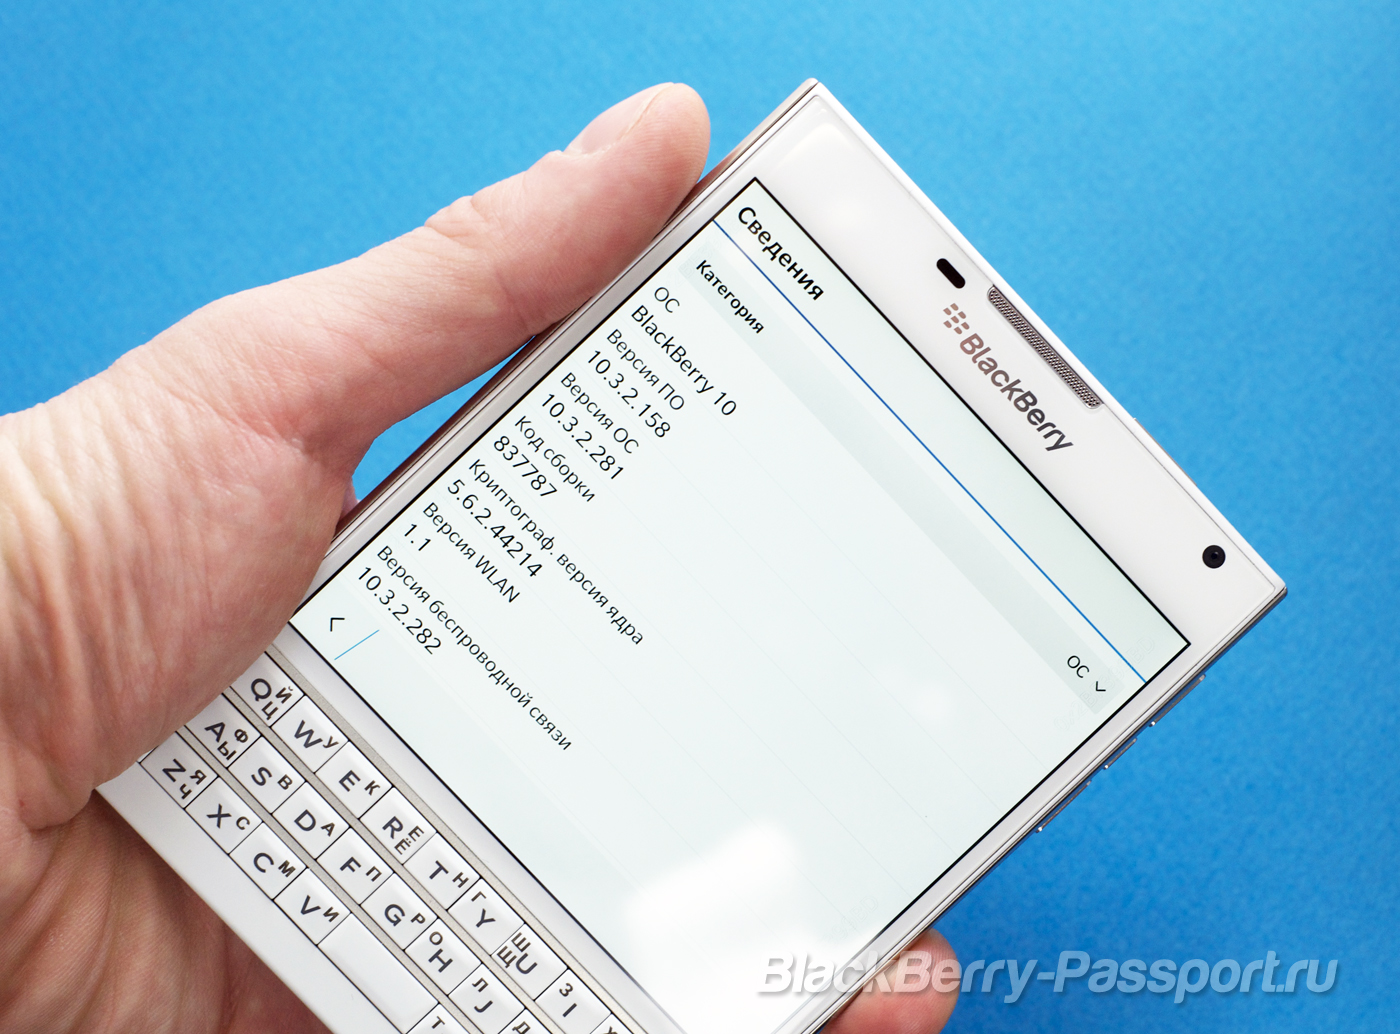 BlackBerry-Passport-10-3-2-281-BP